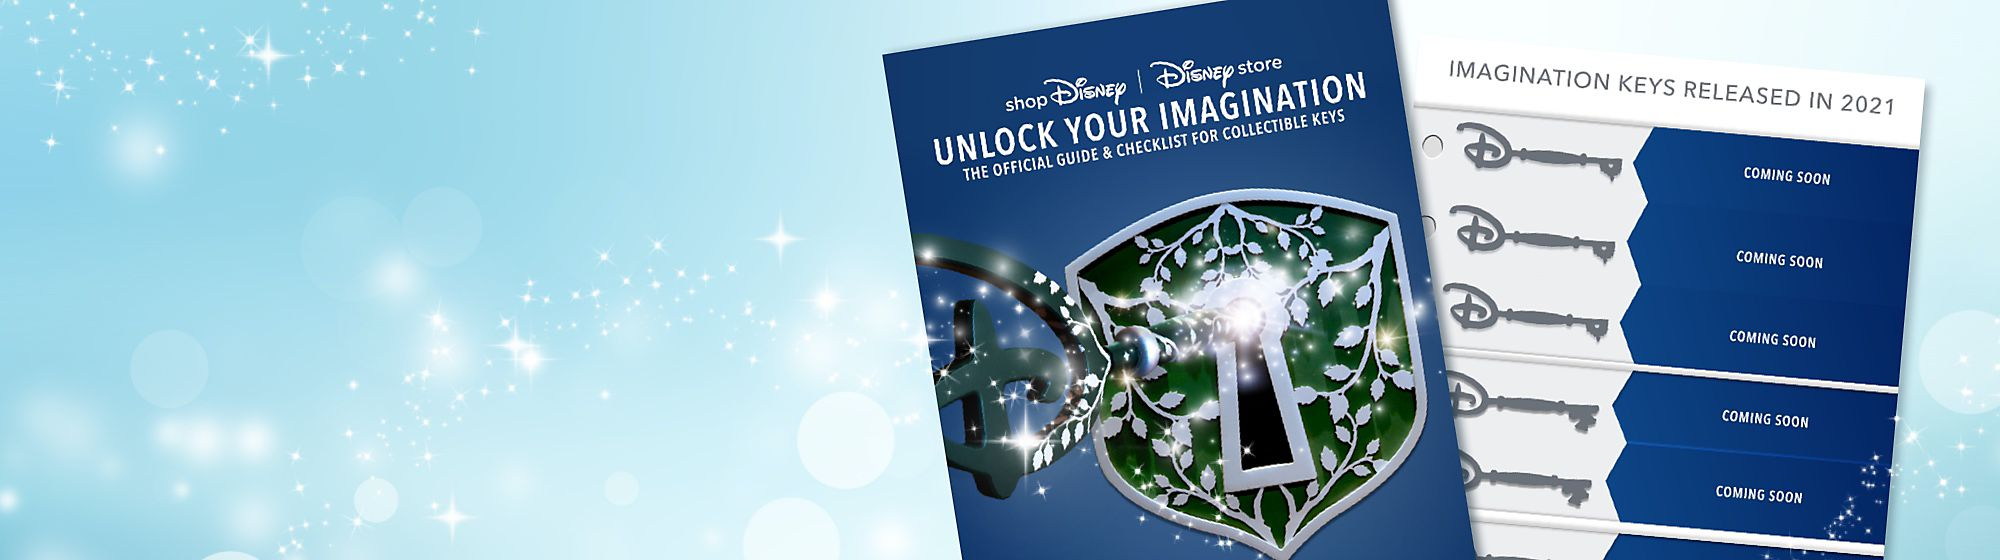 Imagination Keys Unlock the magic with our Imagination Keys. Inspired by the Opening Ceremony keys available in Disney Stores, these characterful keys are perfect for Disney fans and collectors. View our checklist to see which keys have been released so far.